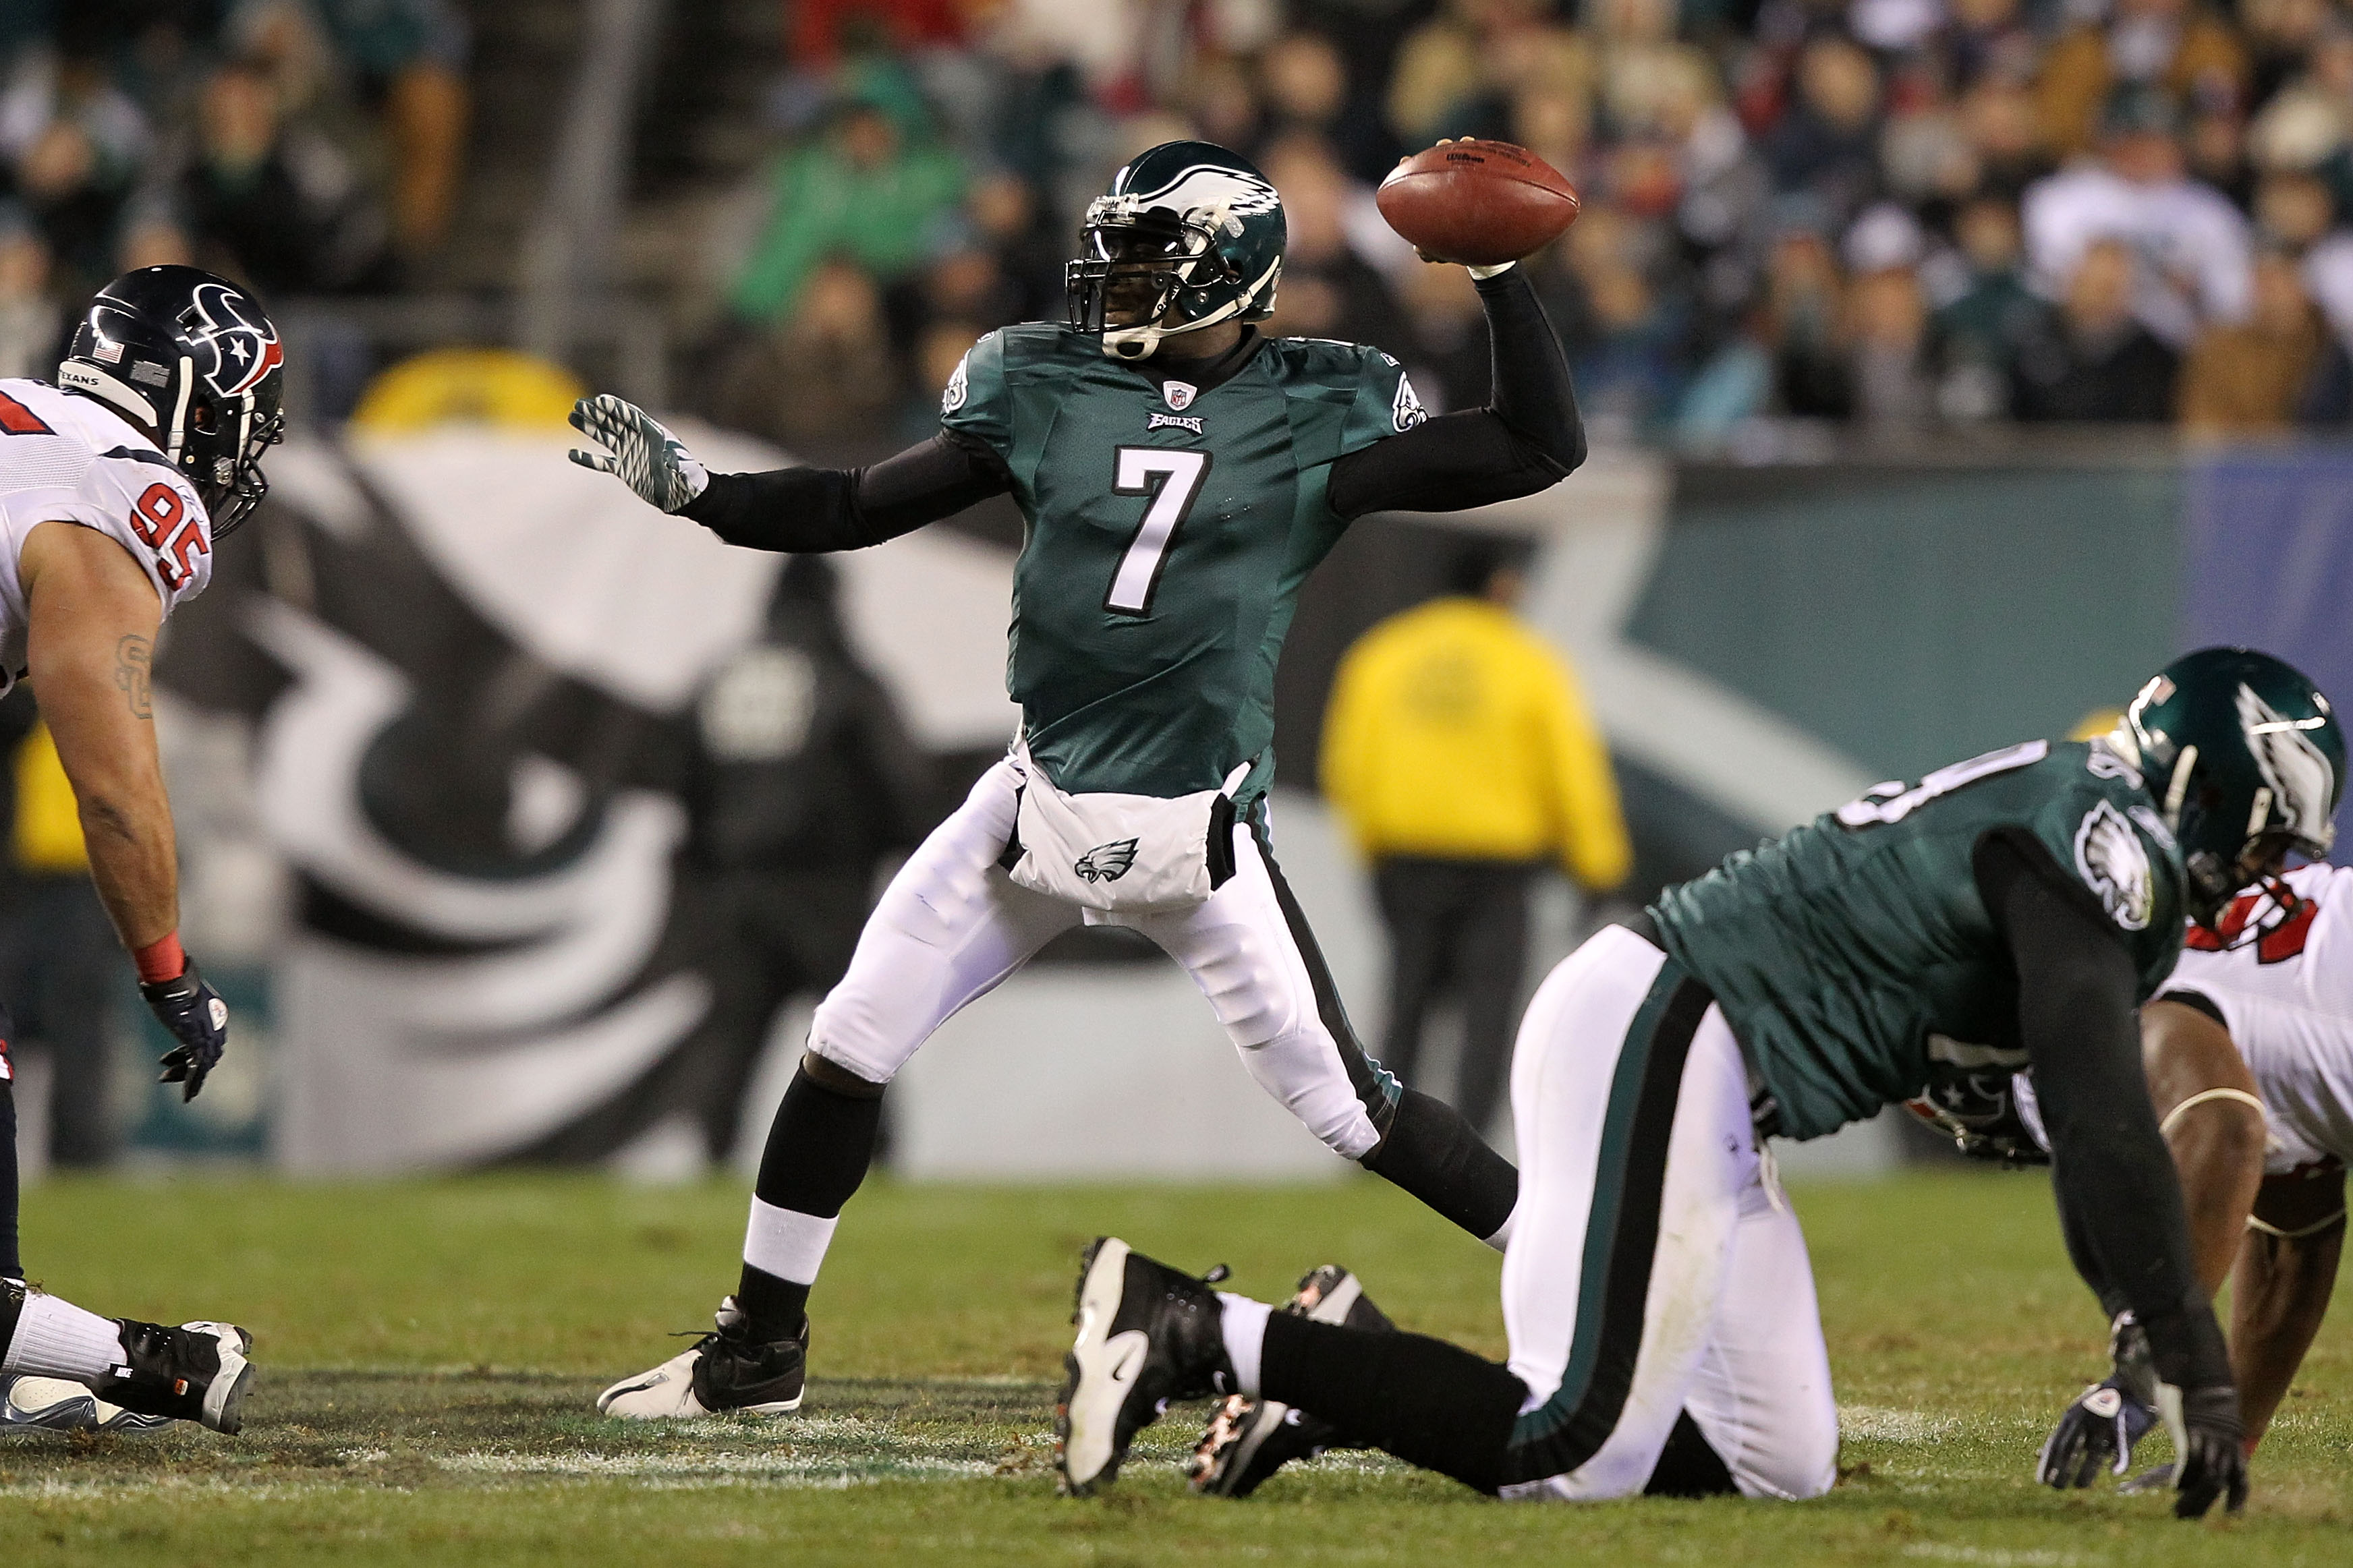 PHILADELPHIA, PA - DECEMBER 02:  Michael Vick #7 of the Philadelphia Eagles throws a pass against the Houston Texans at Lincoln Financial Field on December 2, 2010 in Philadelphia, Pennsylvania.  (Photo by Al Bello/Getty Images)